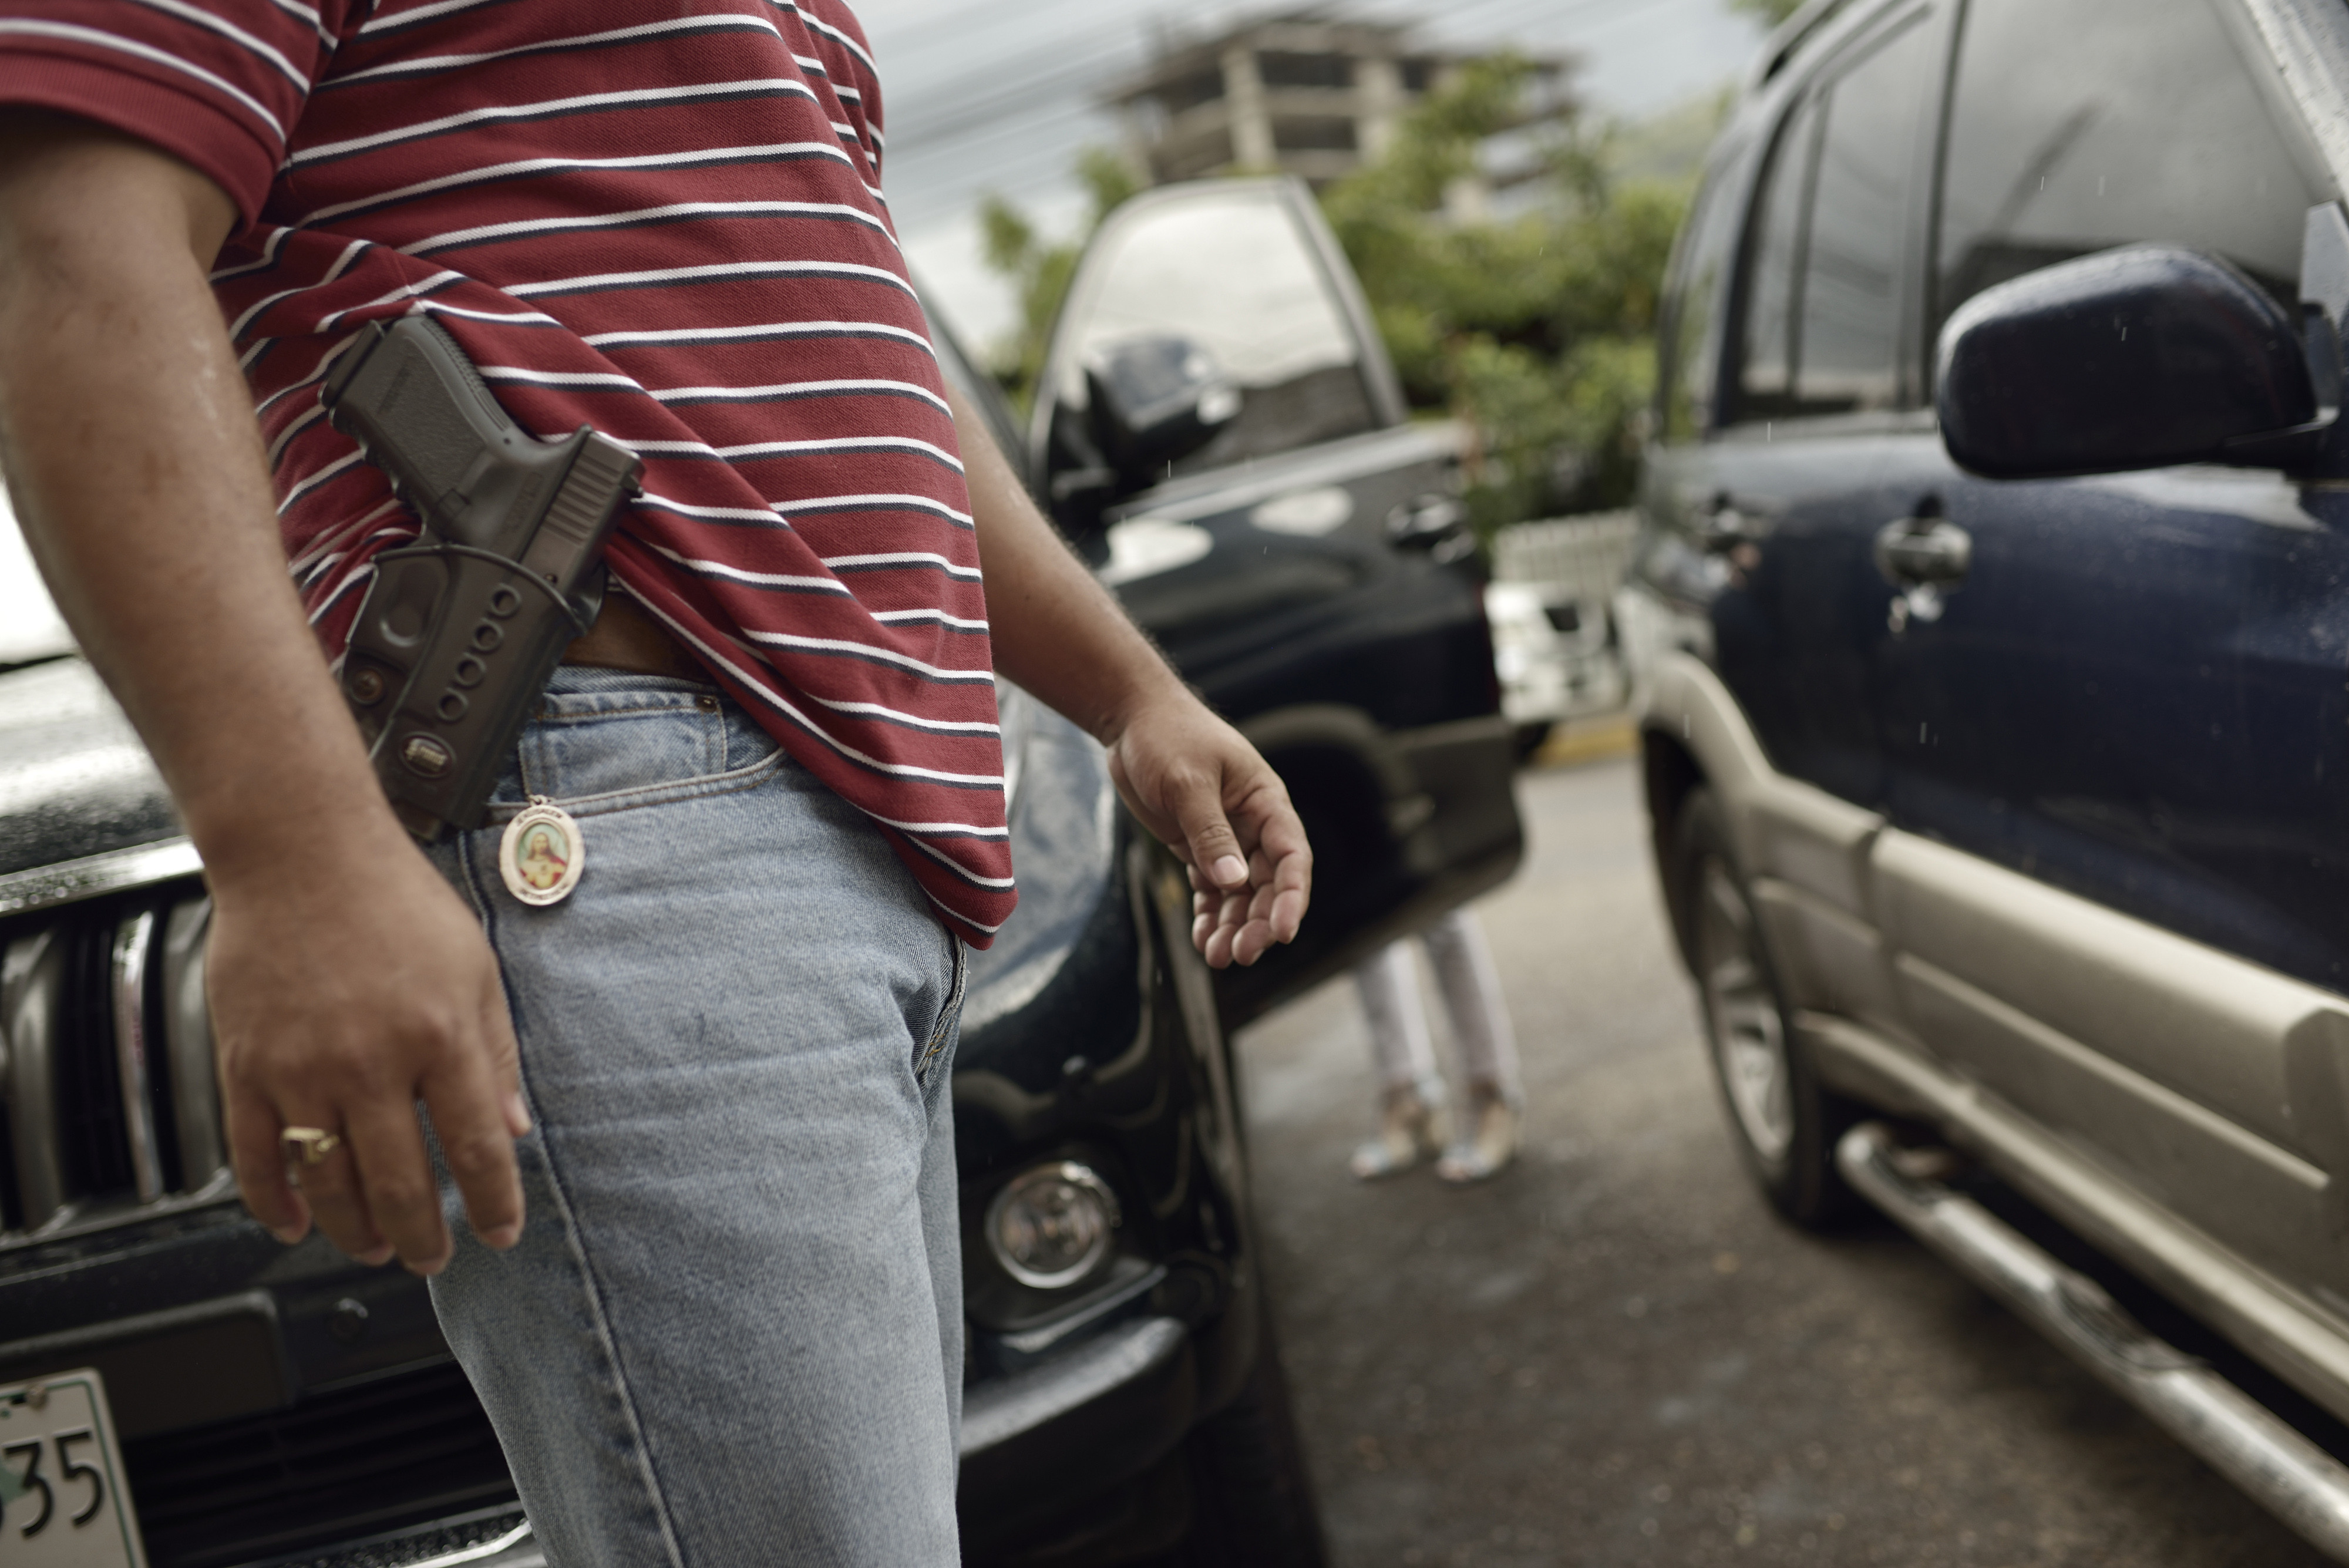 ©Kadir van Lohuizen / NOOR Caption: Honduras, Tegucigalpa, 2012, Private security guard watches a client entering the car. Many companies and residents of the city feel that the police is not to be trusted and hire private security companies. IG : @kadirvanlohuizen Twitter : @mediakadir